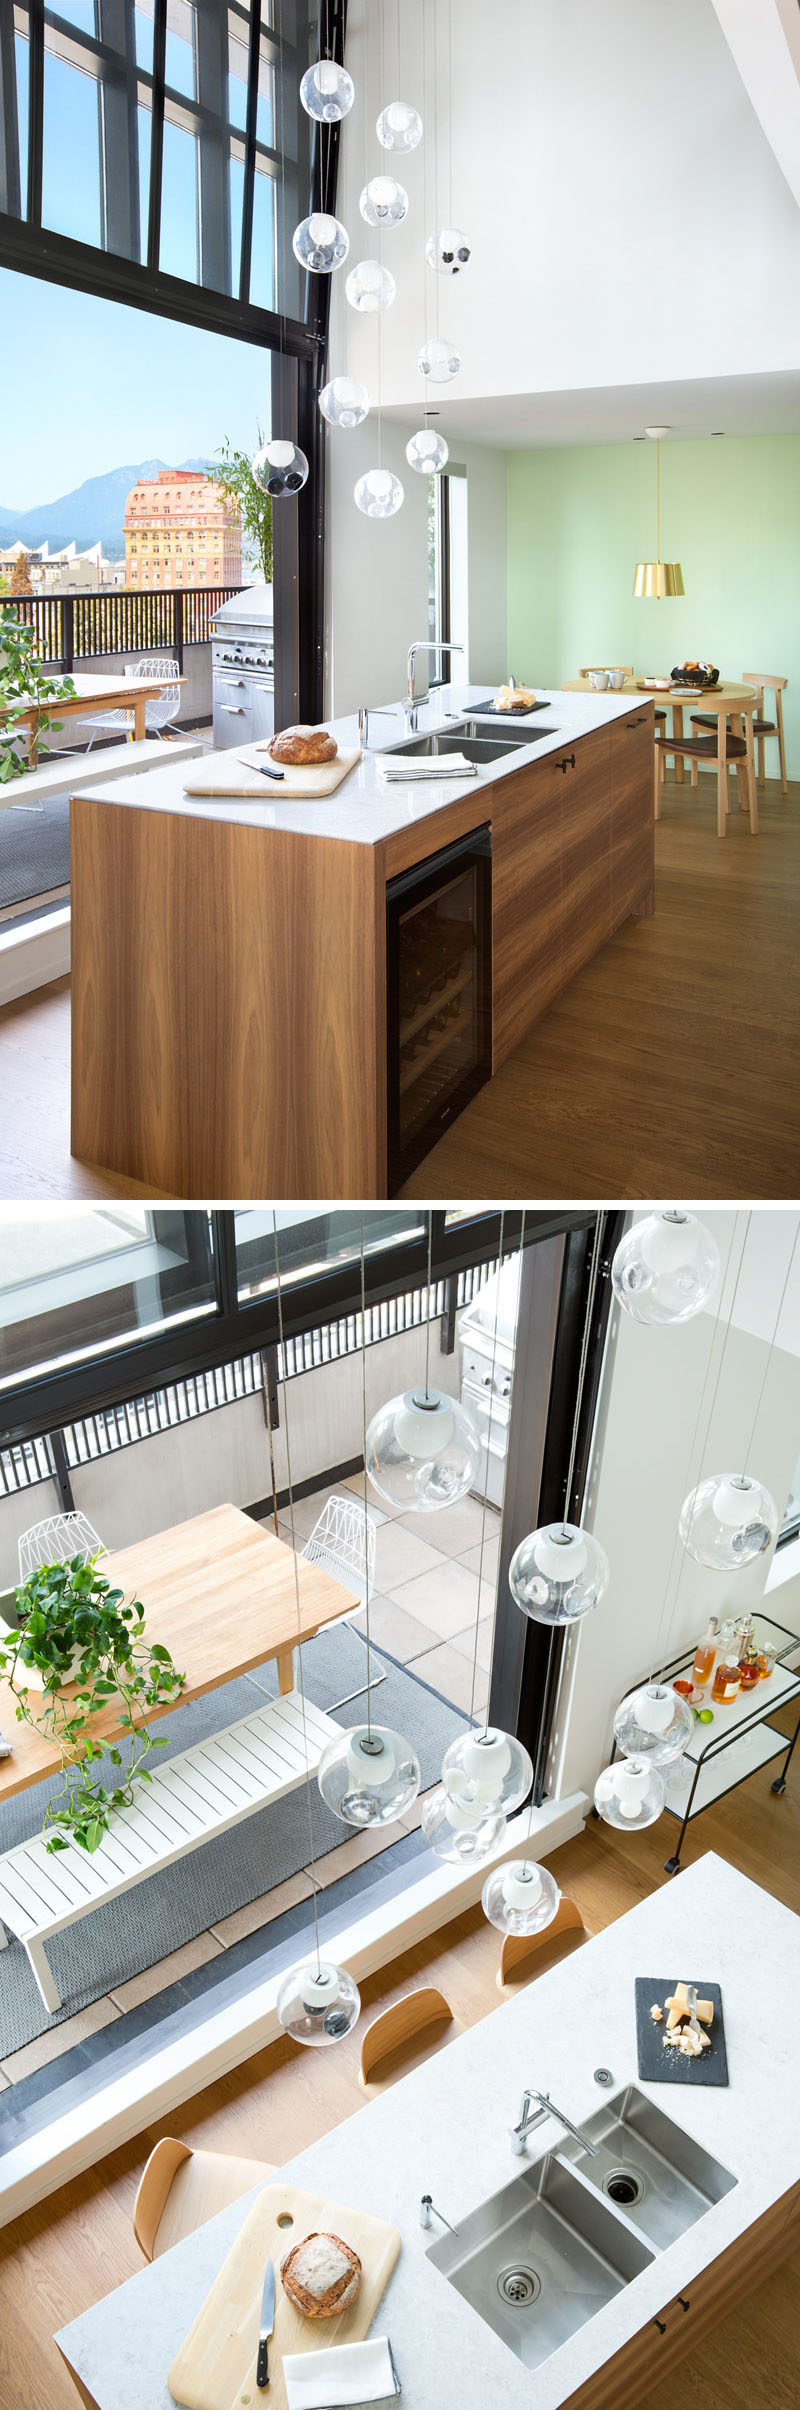 This modern kitchen island has a built-in wine fridge, undermount sinks, storage, and the countertop overhangs slightly on one side to enable people to sit at the counter.